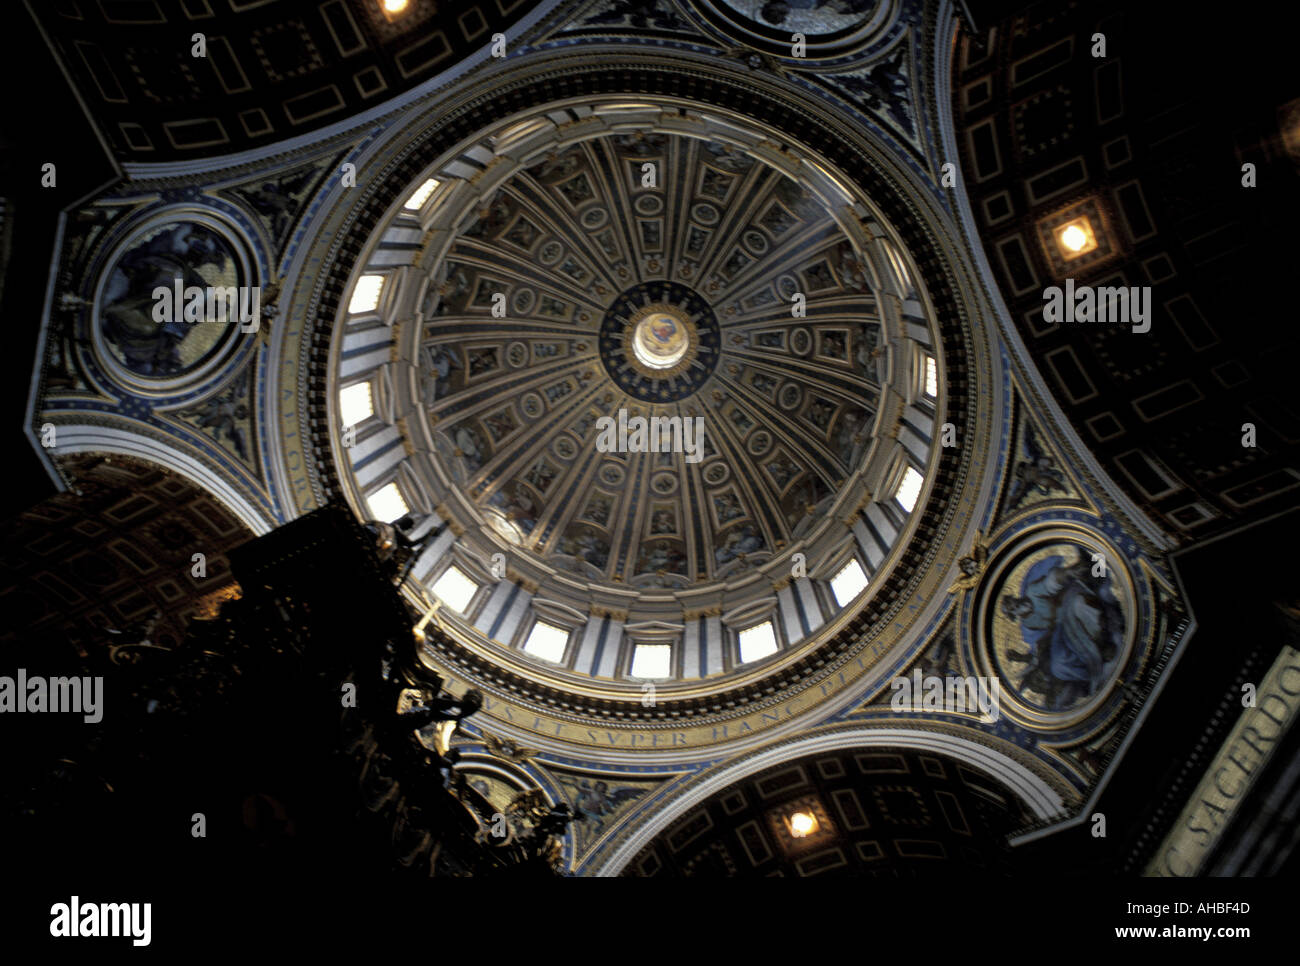 St Peter s cathedral dome Vatican city - Stock Image